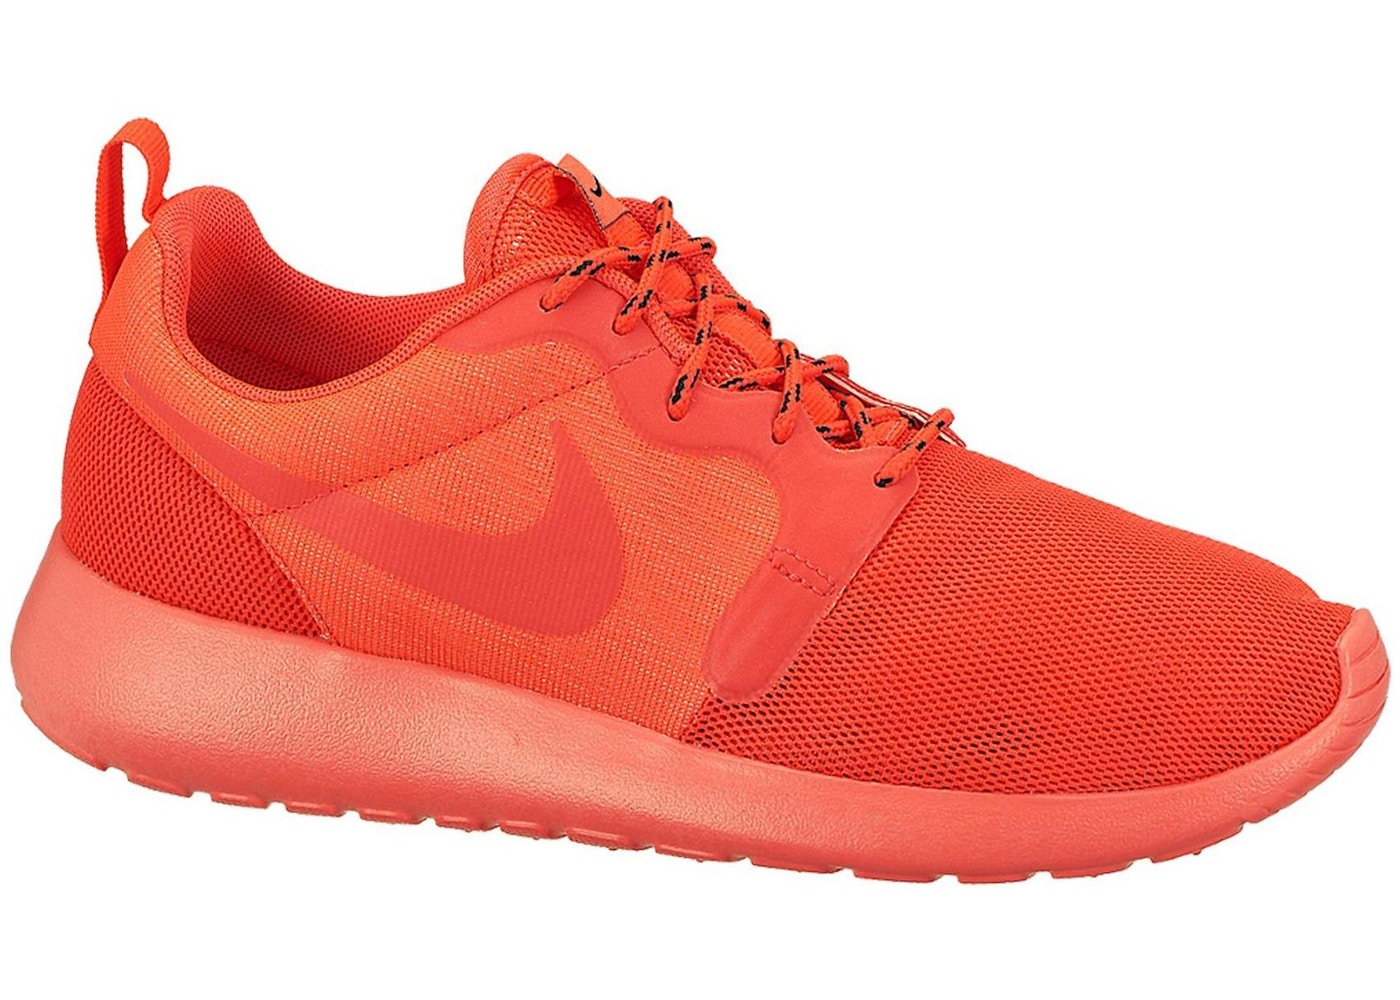 247dd5d1bdaa Nike Roshe Run Hyperfuse Laser Crimson (GS) - 642233-600